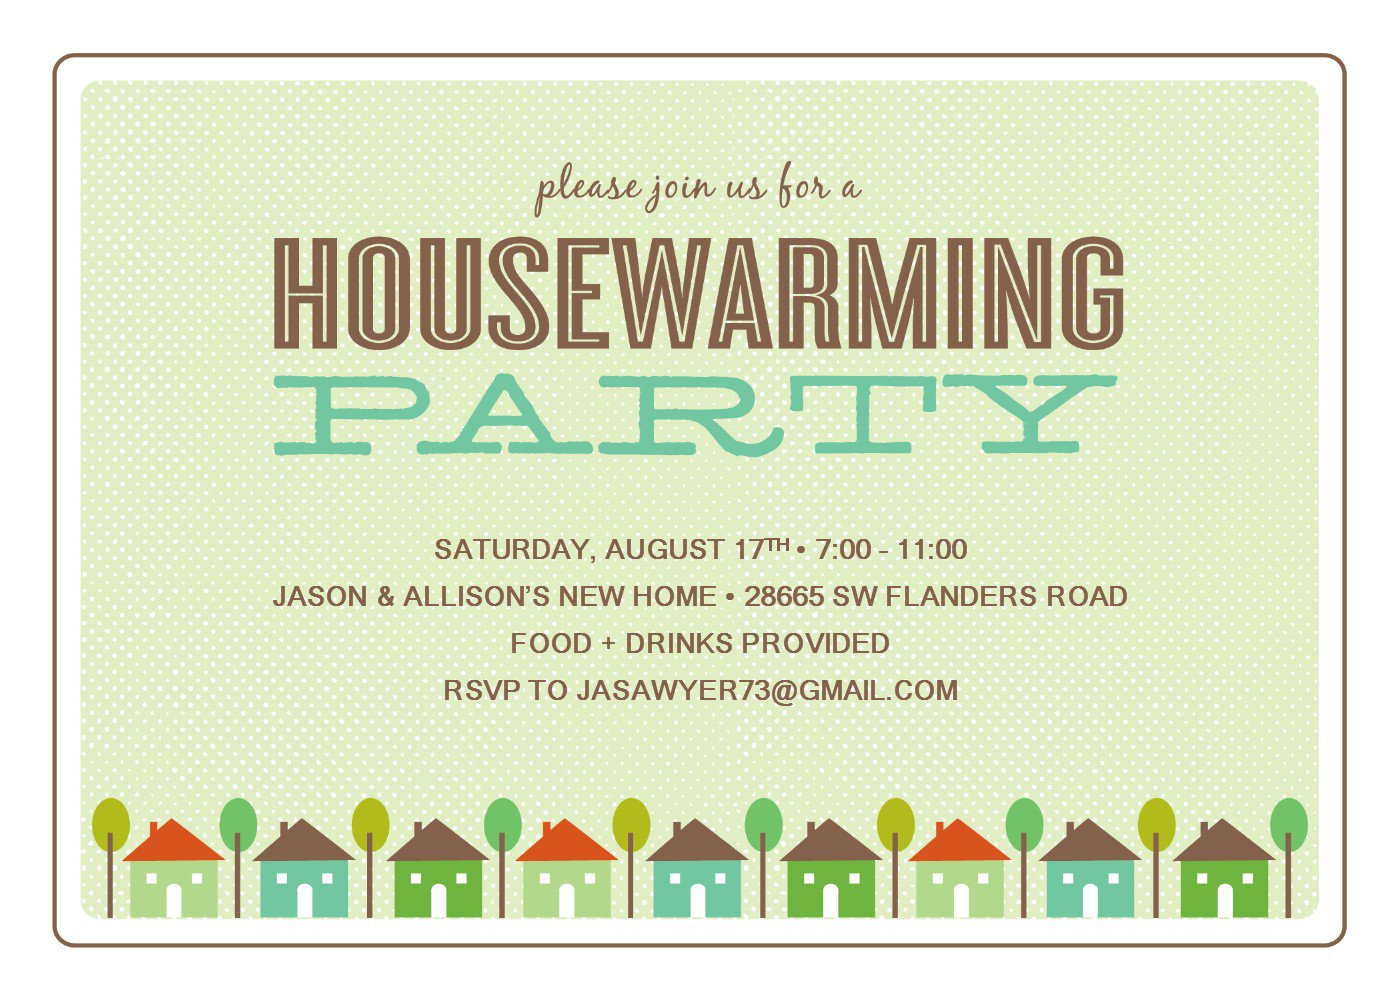 House Warming Party Invitation – Funny Housewarming Party Invitations